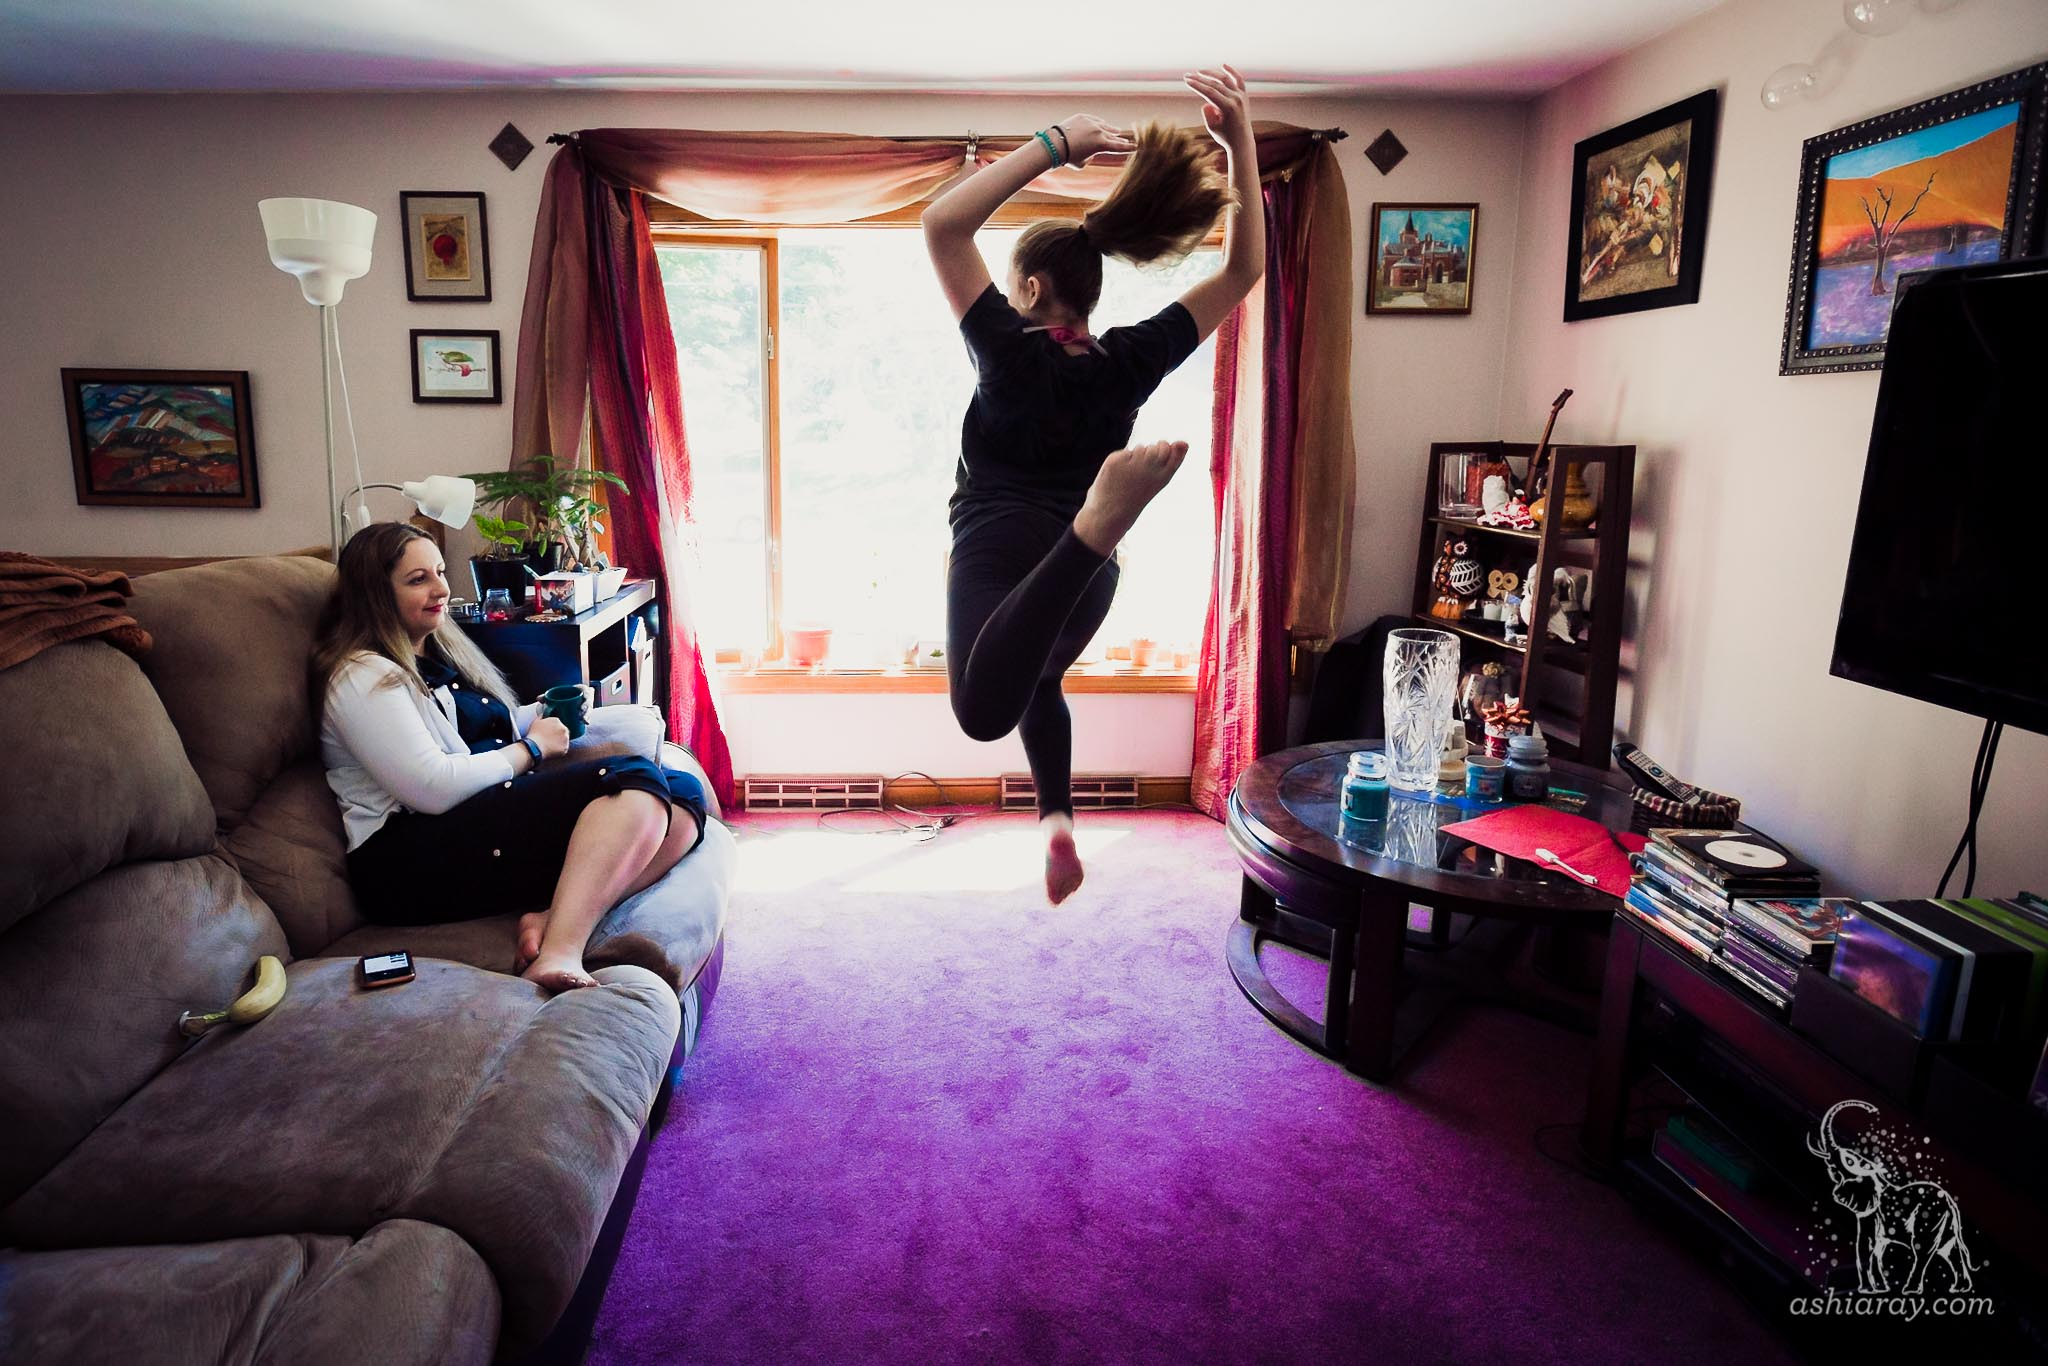 Mother watching teen daughter dance in living room with purple rug